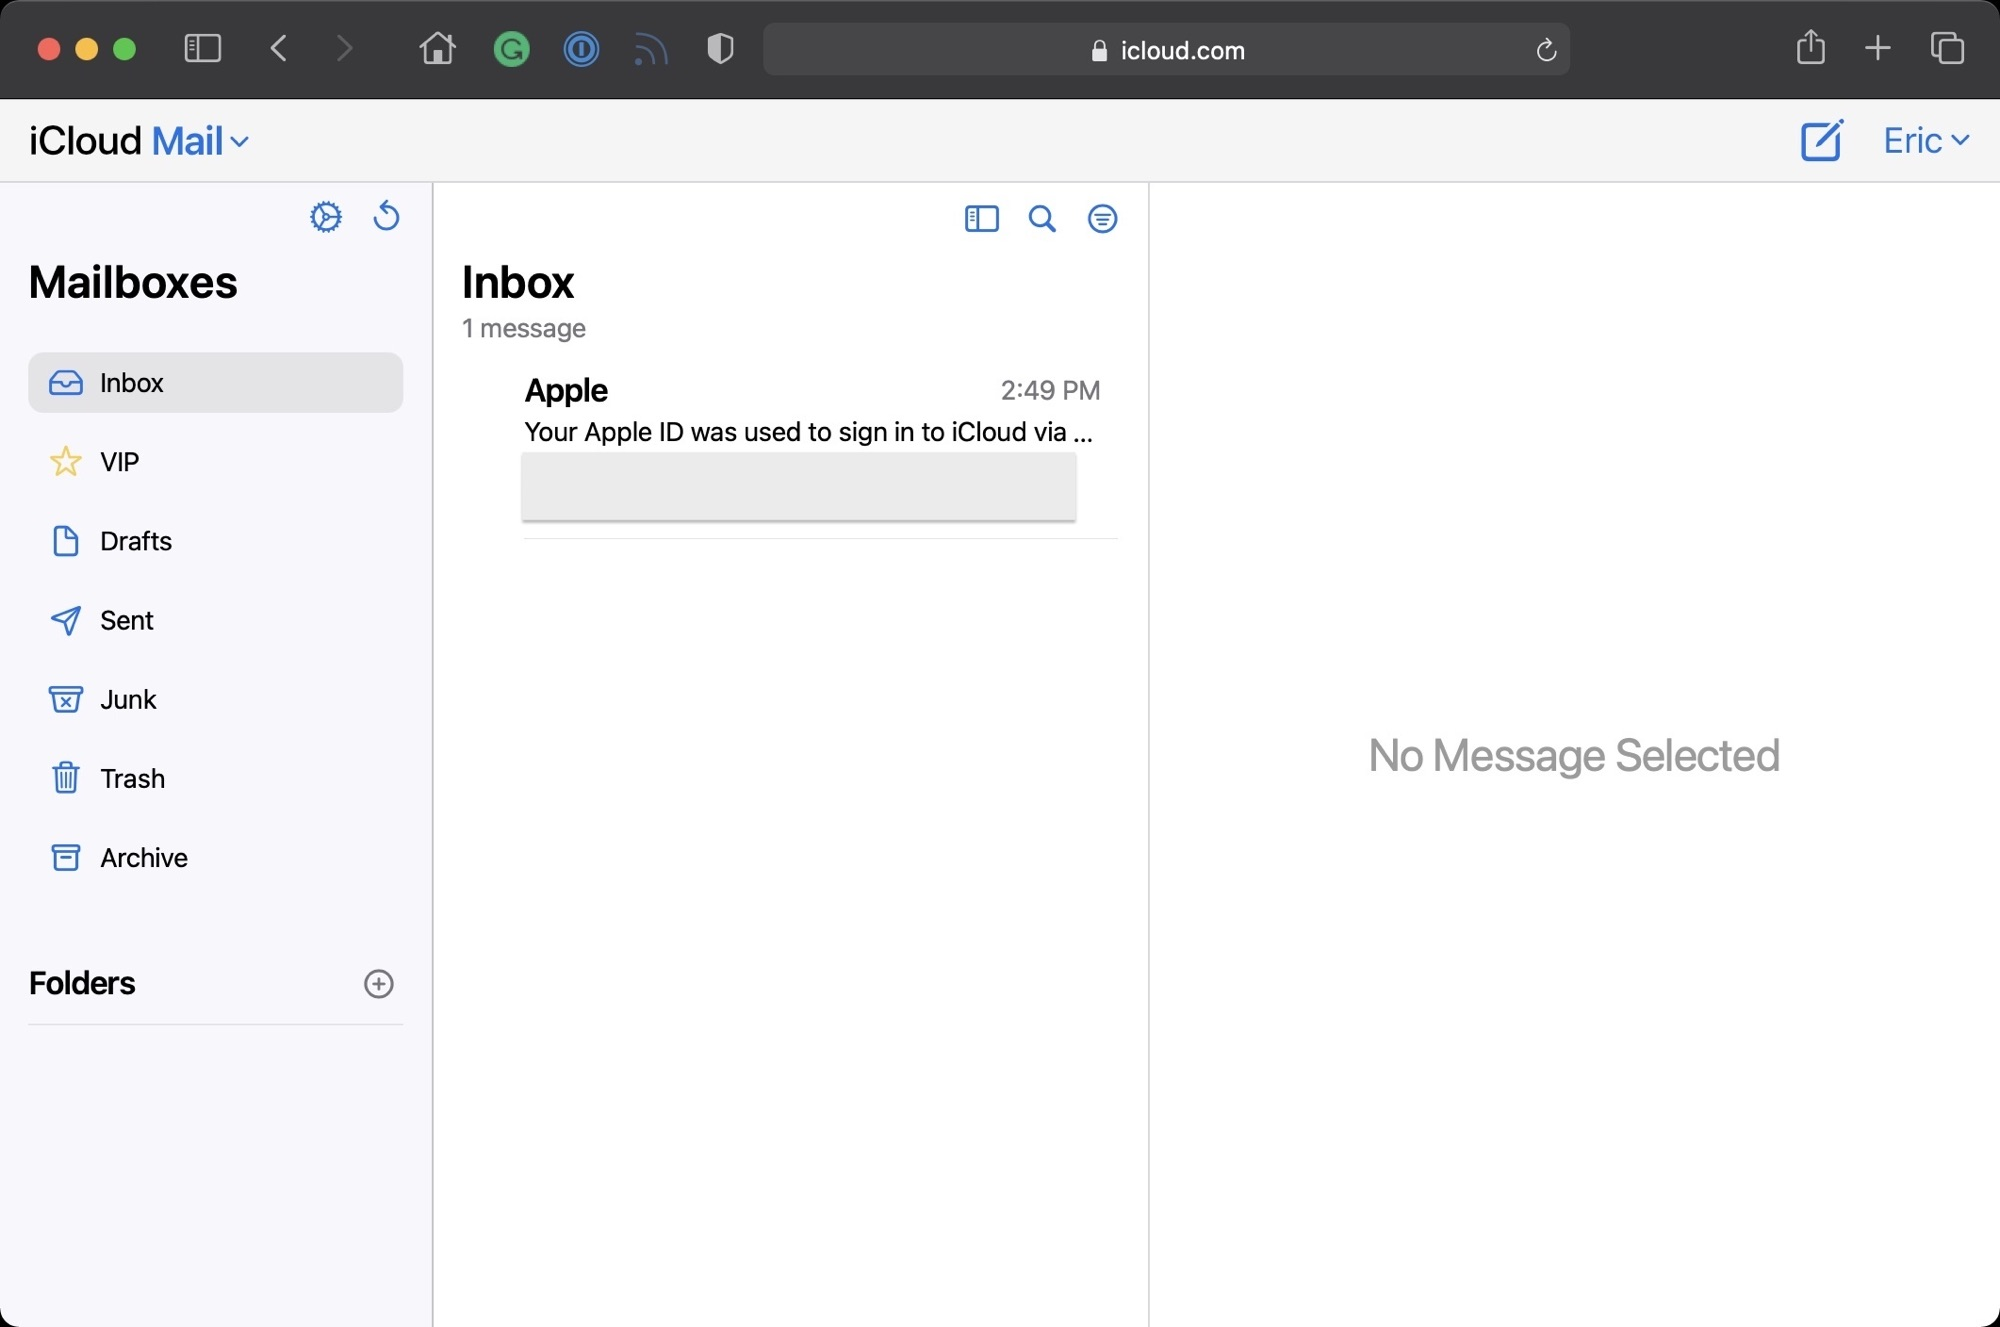 icloud mail redesign